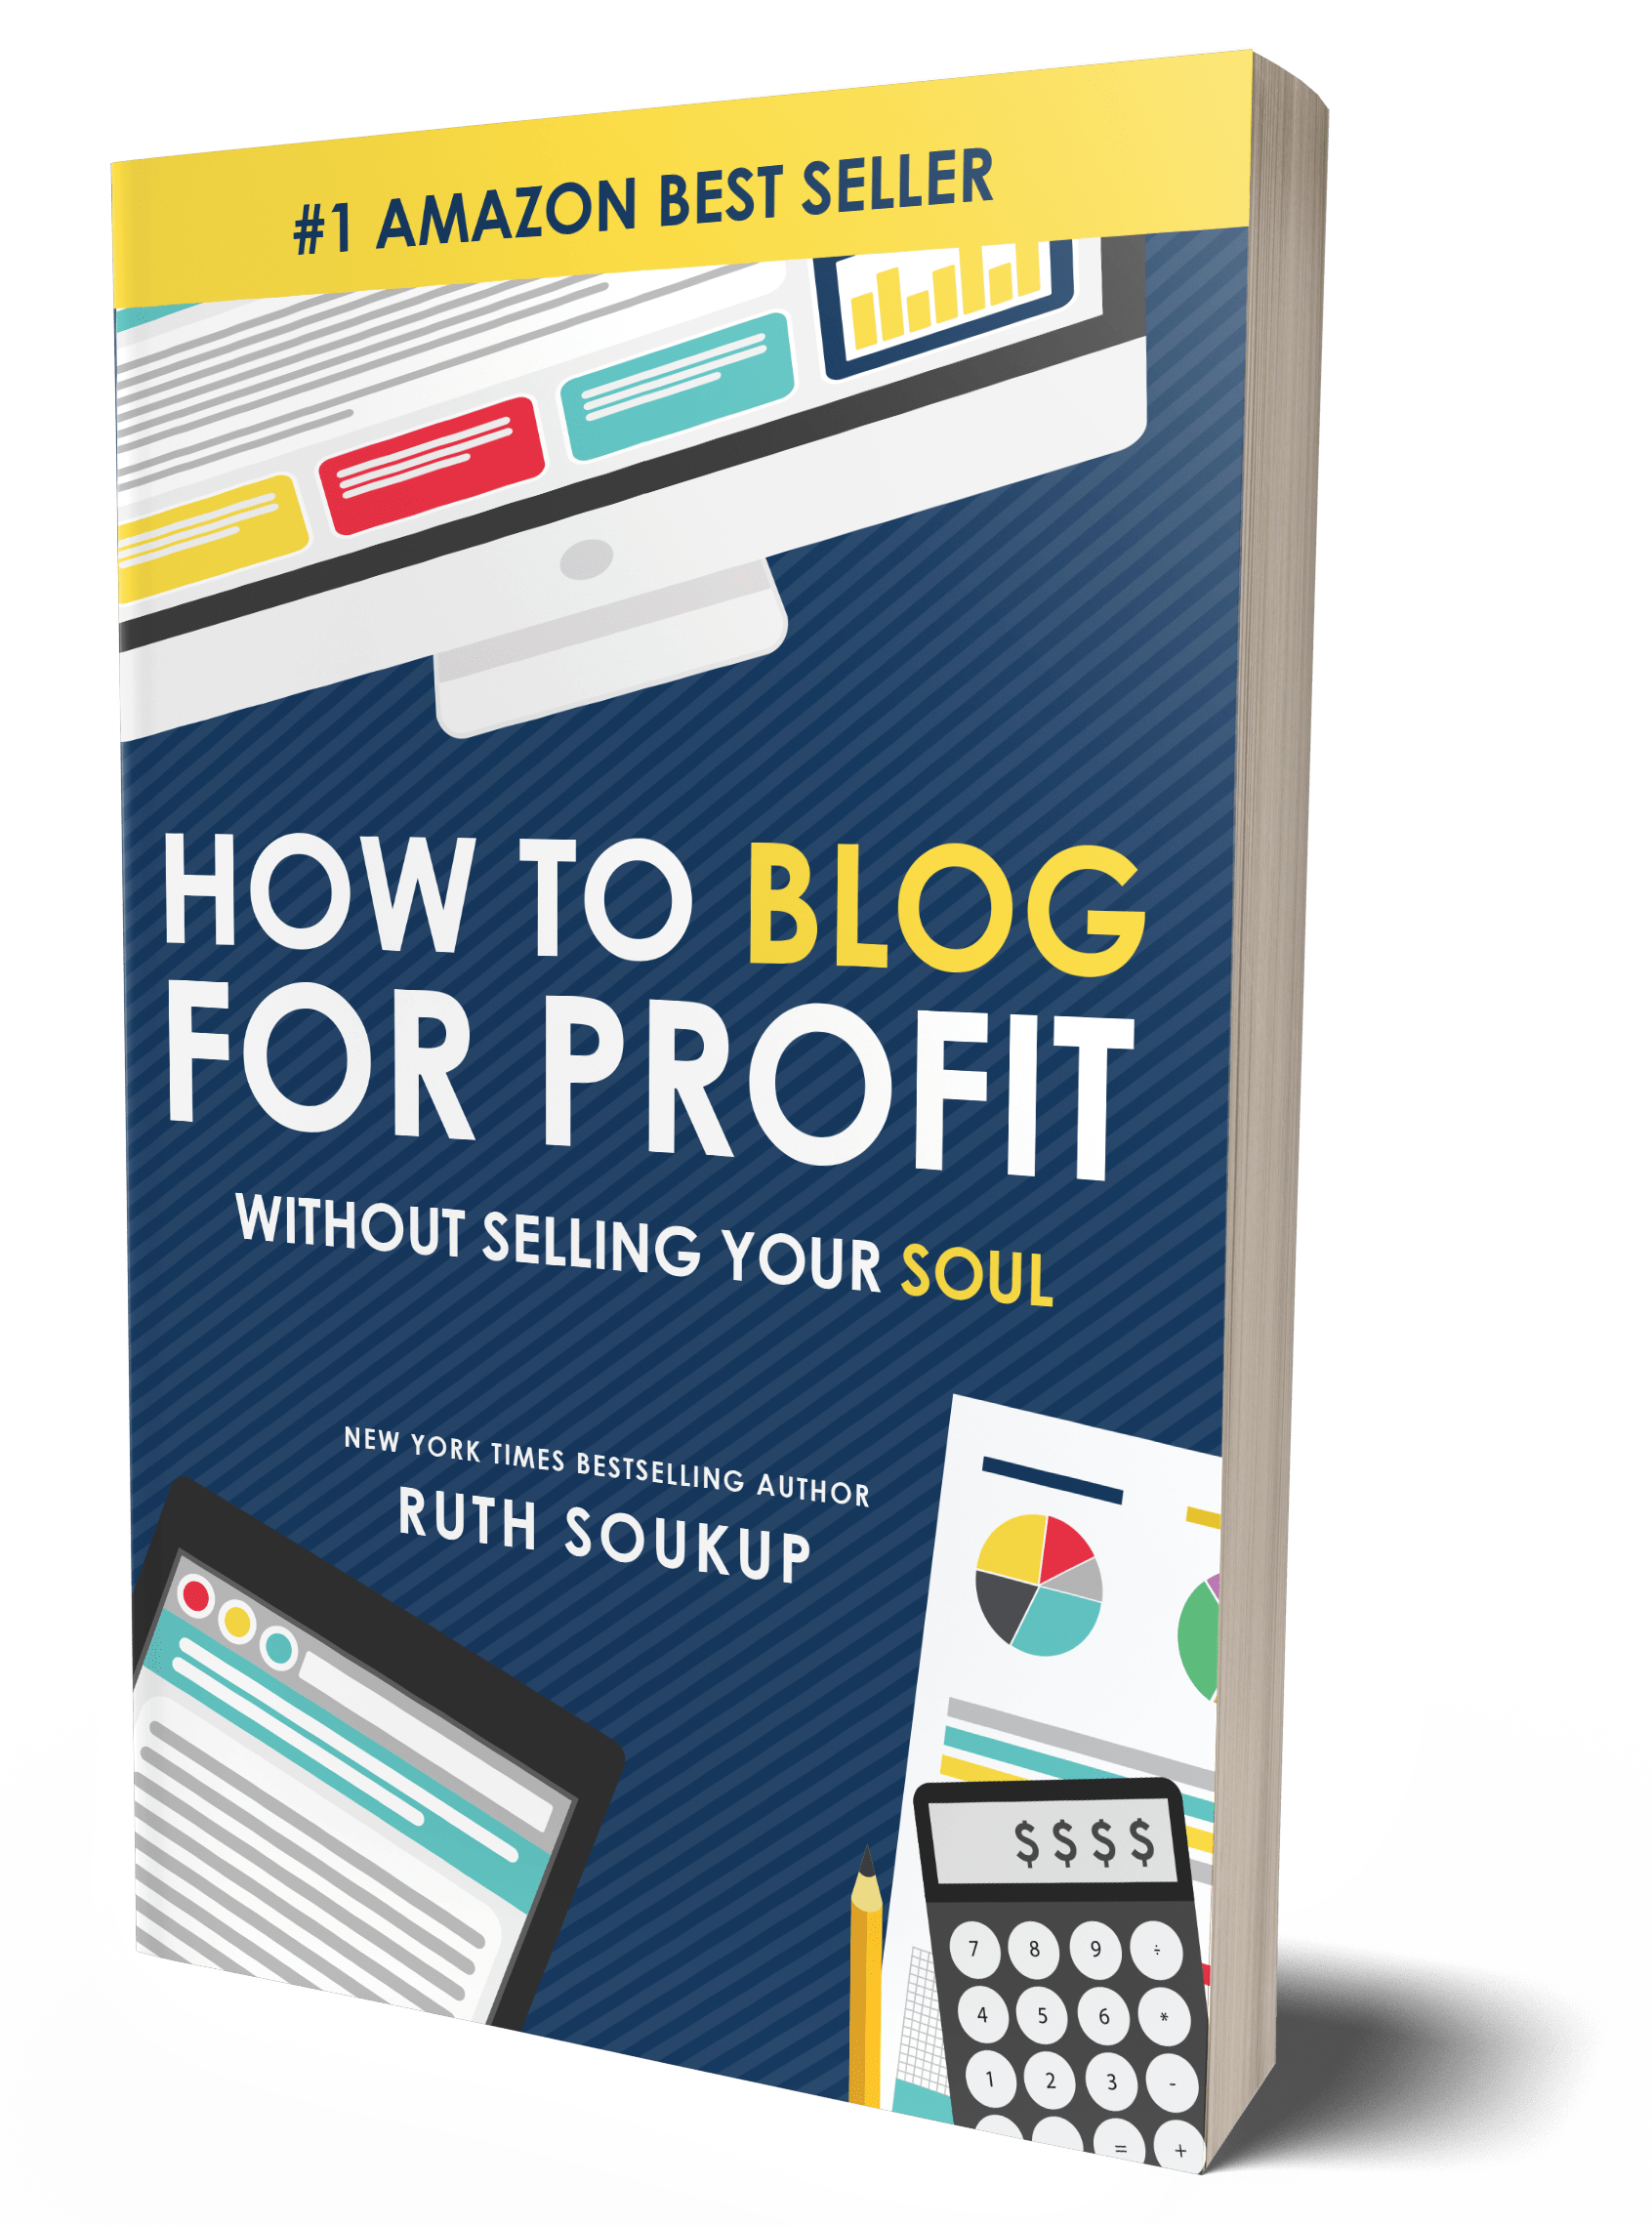 How to Blog for Profit without Selling Your Soul book